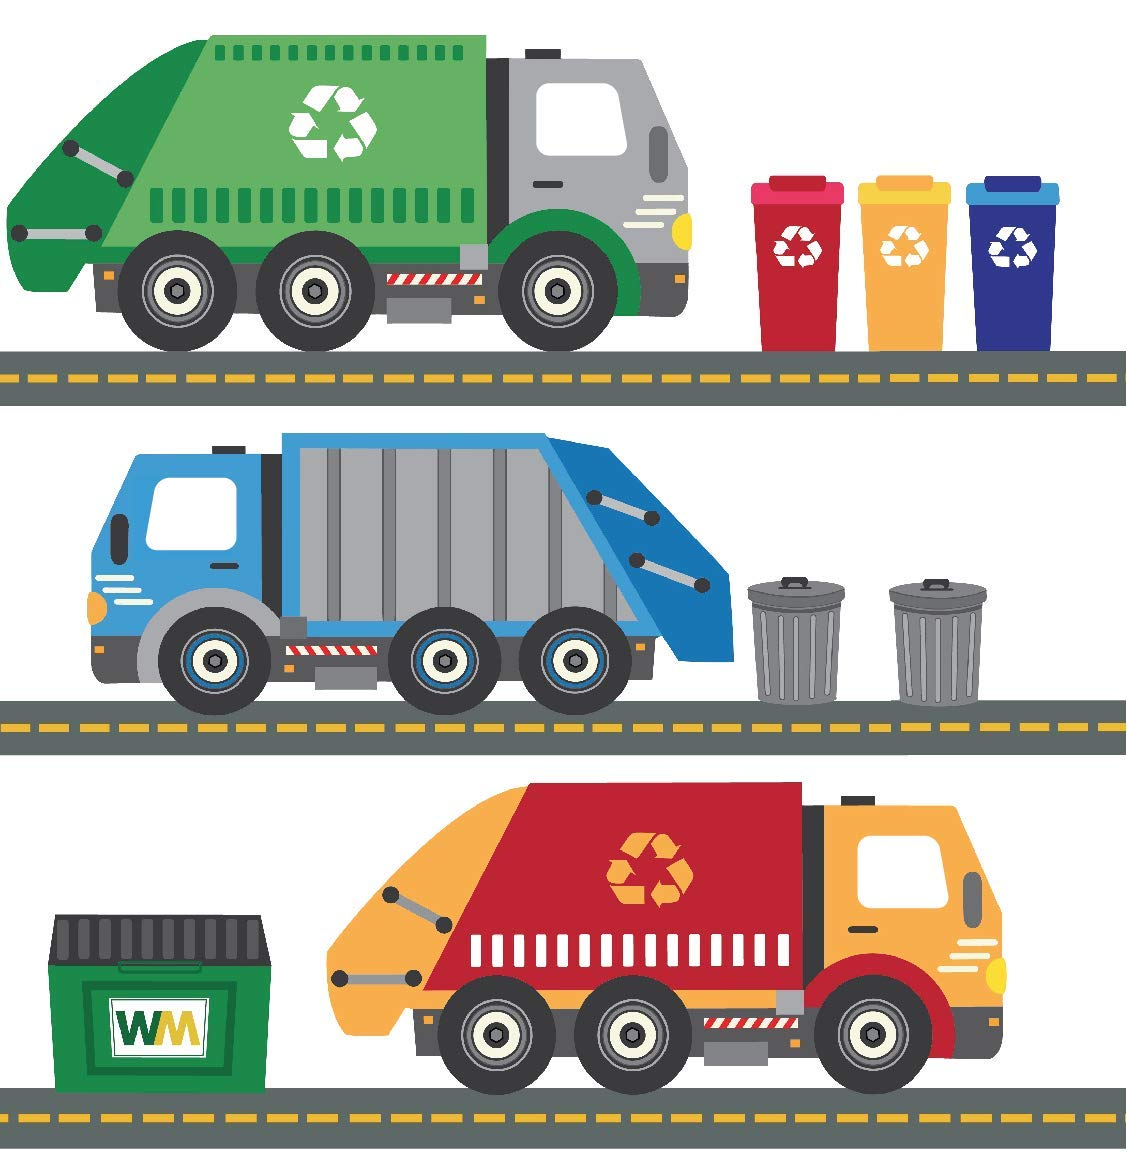 Garbage Trucks Wall Decals, Recycling Trucks Decals with 15 Ft of Gray Straight Road, Peel and Stick Fabric Stickers